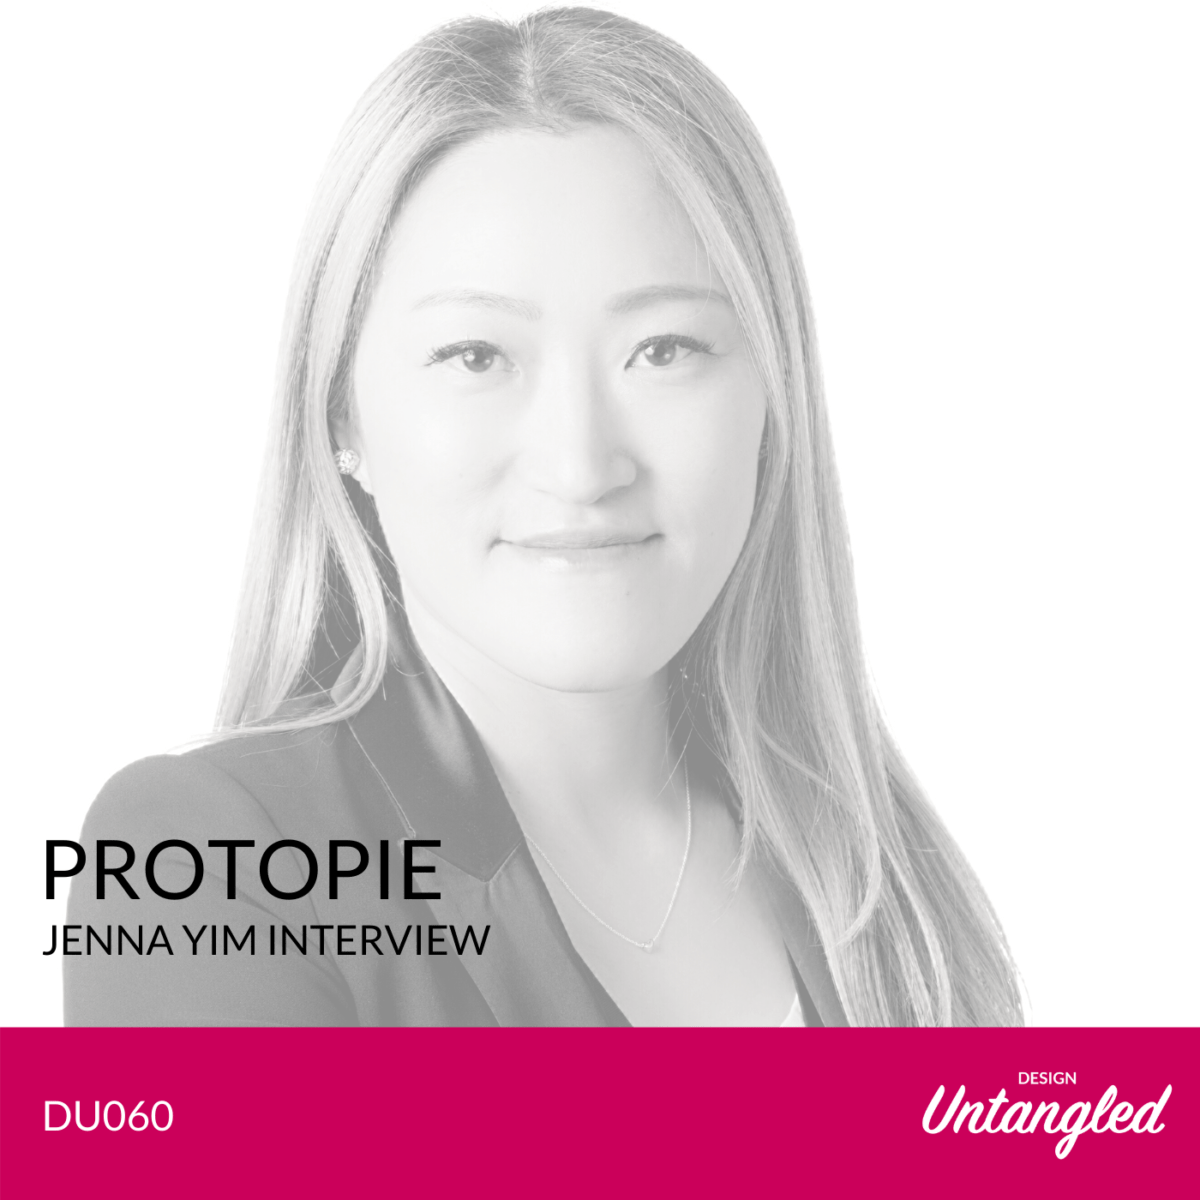 DU060 - Protopie - Jenna Yim Interview